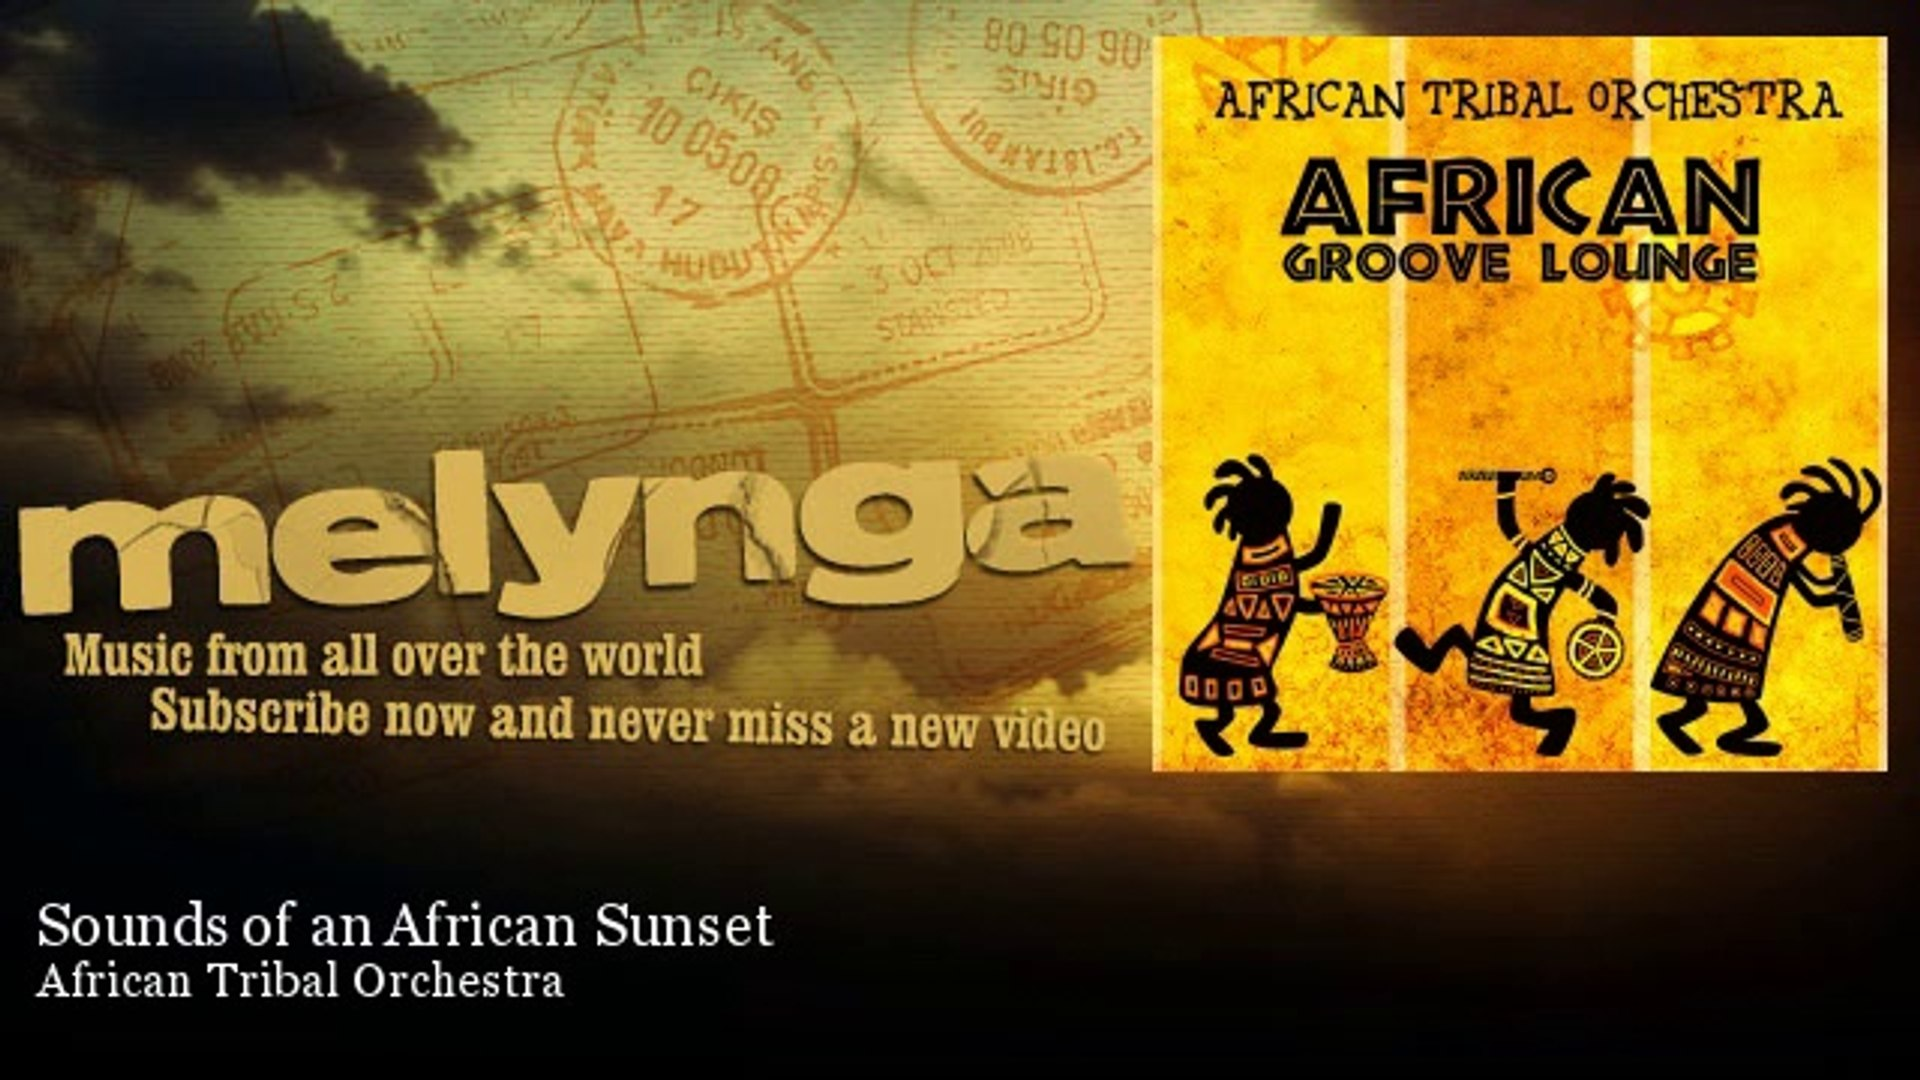 African Tribal Orchestra - Sounds of an African Sunset